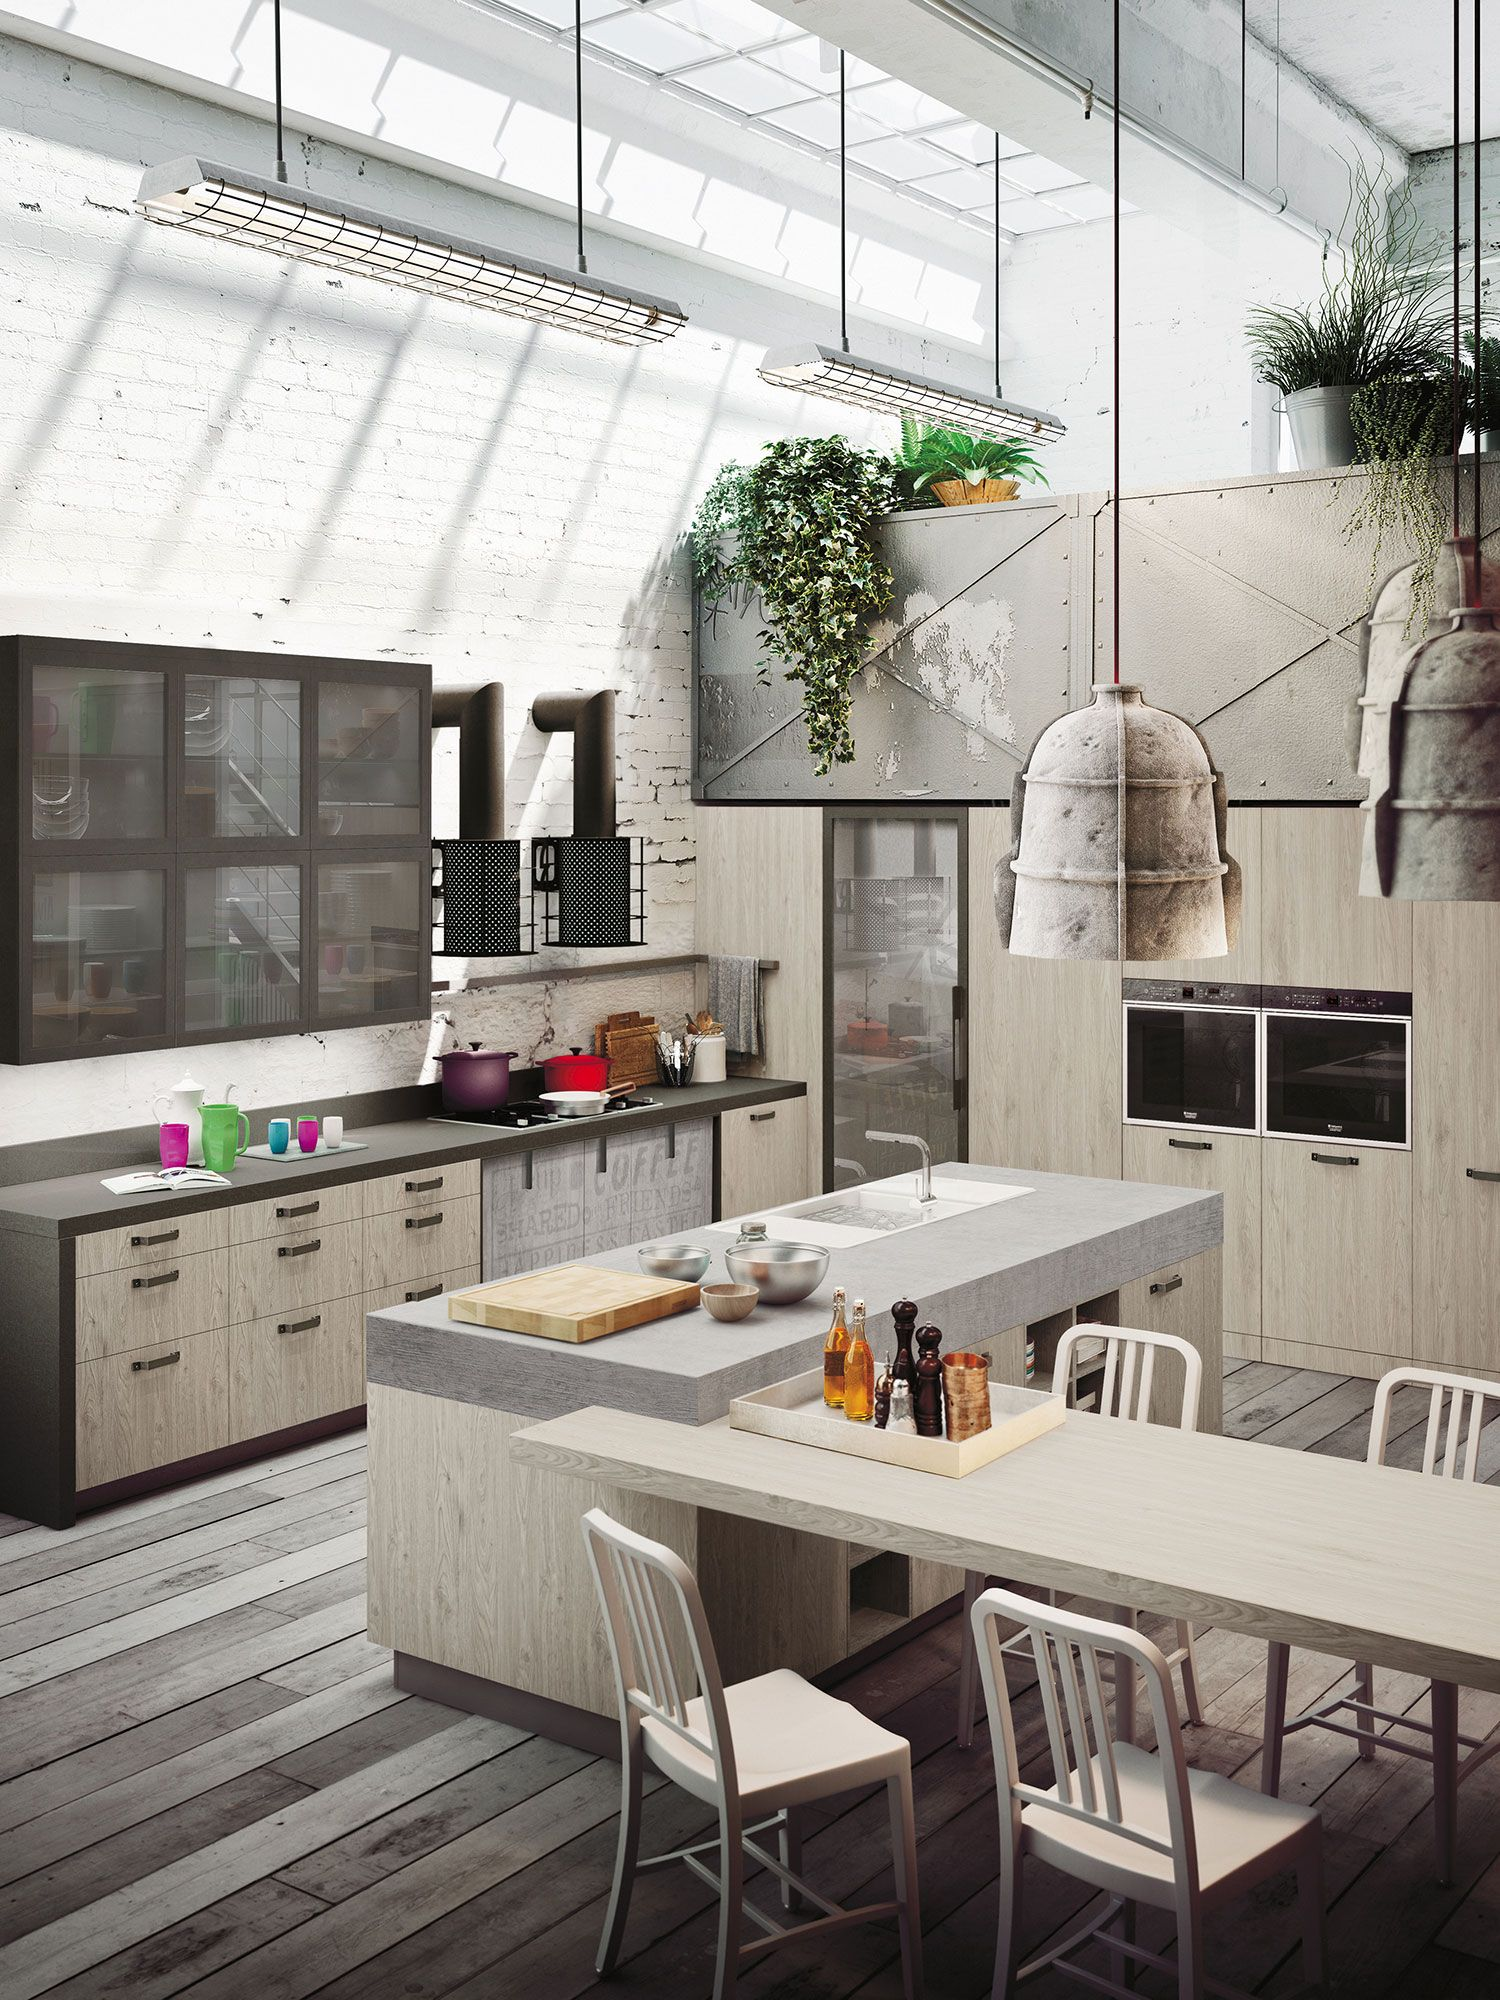 Snaidero Loft Kitchen 18 Cottage Kitchen Design Loft Kitchen Loft Apartment Kitchen